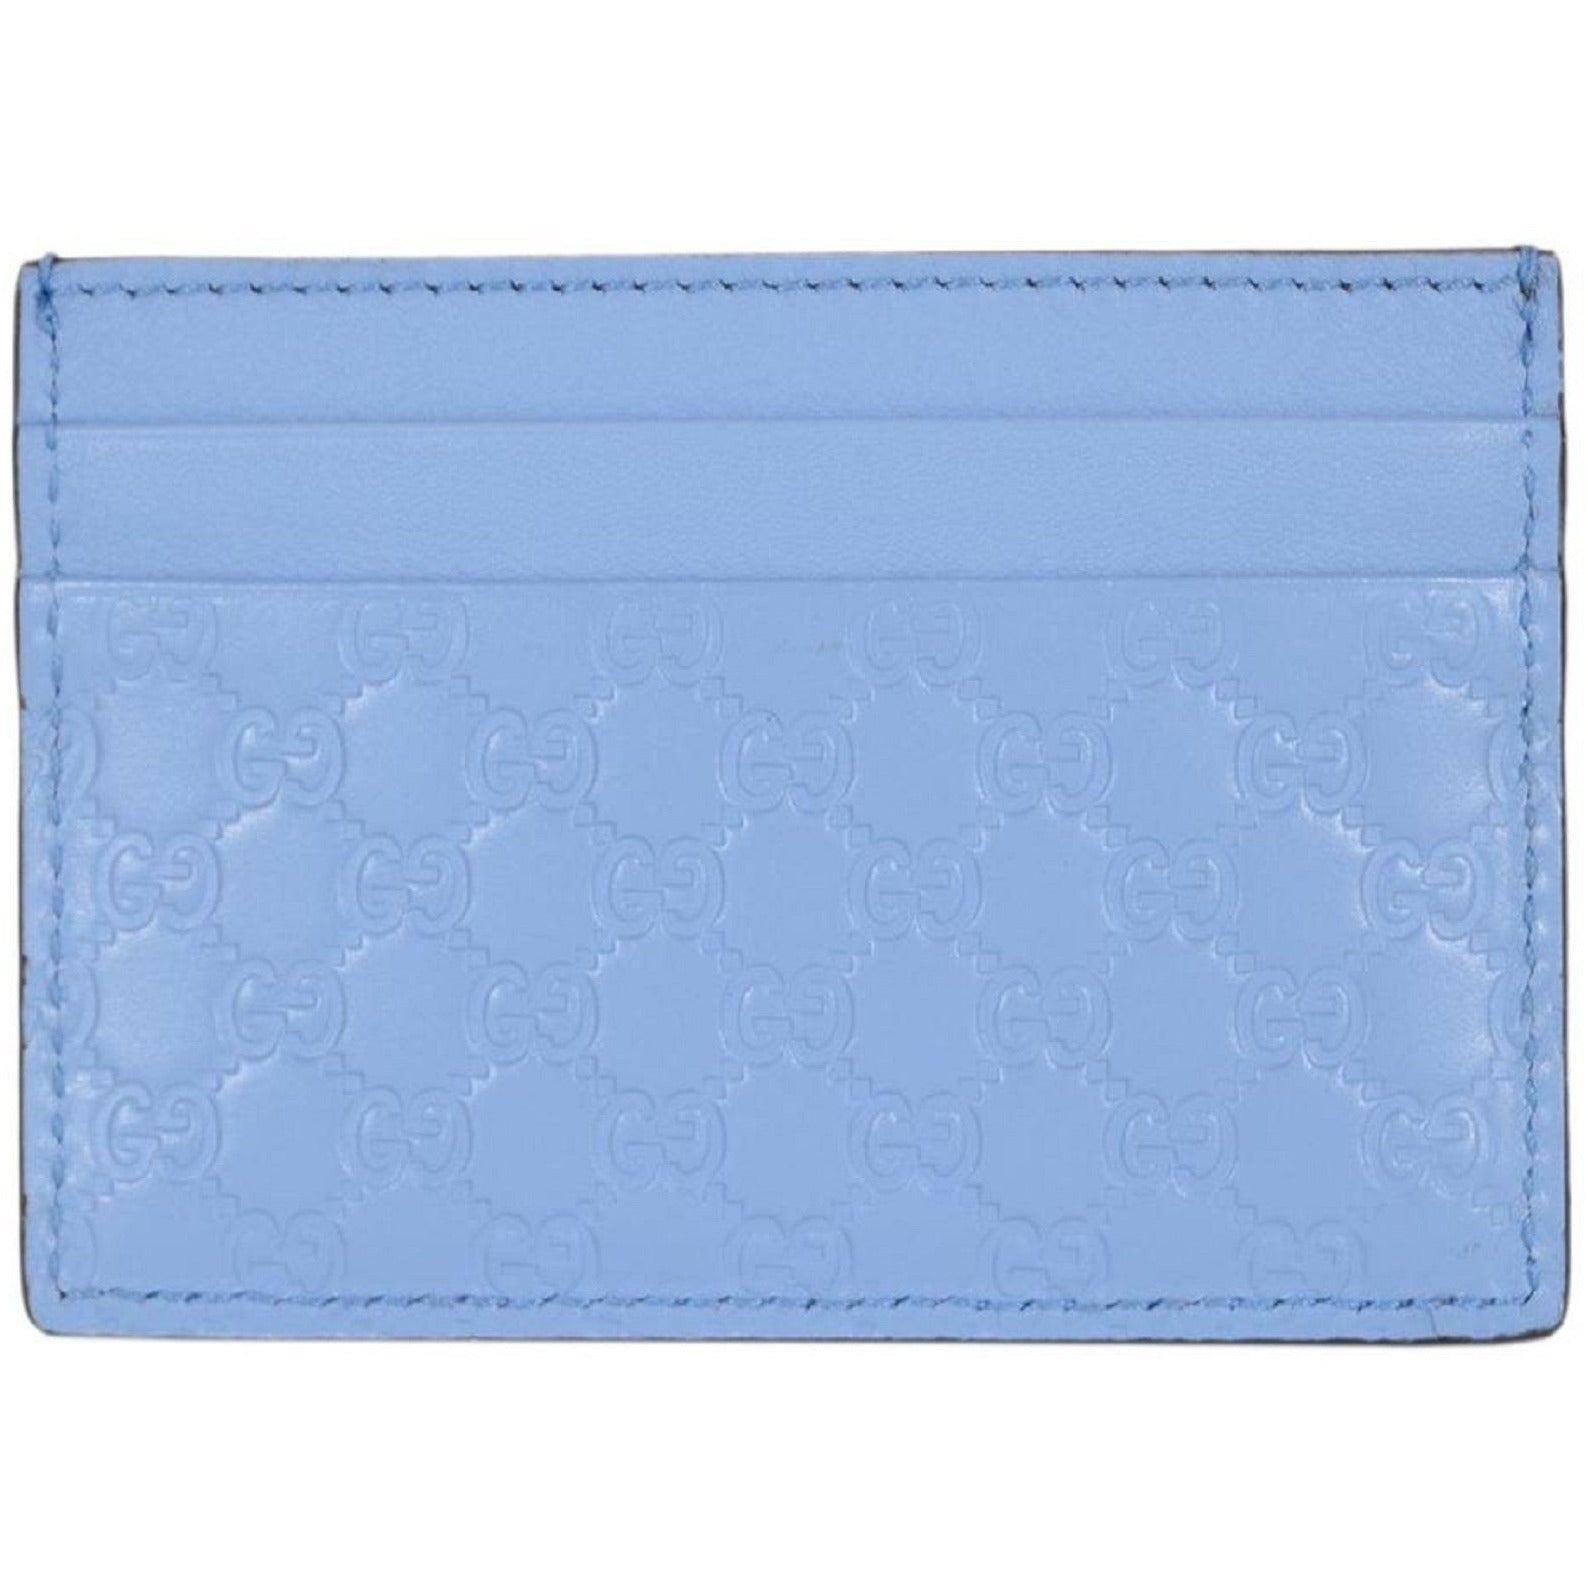 Gucci Microguccissma Mineral Blue Card Holder Leather Wallet 476010 Wallets Gucci